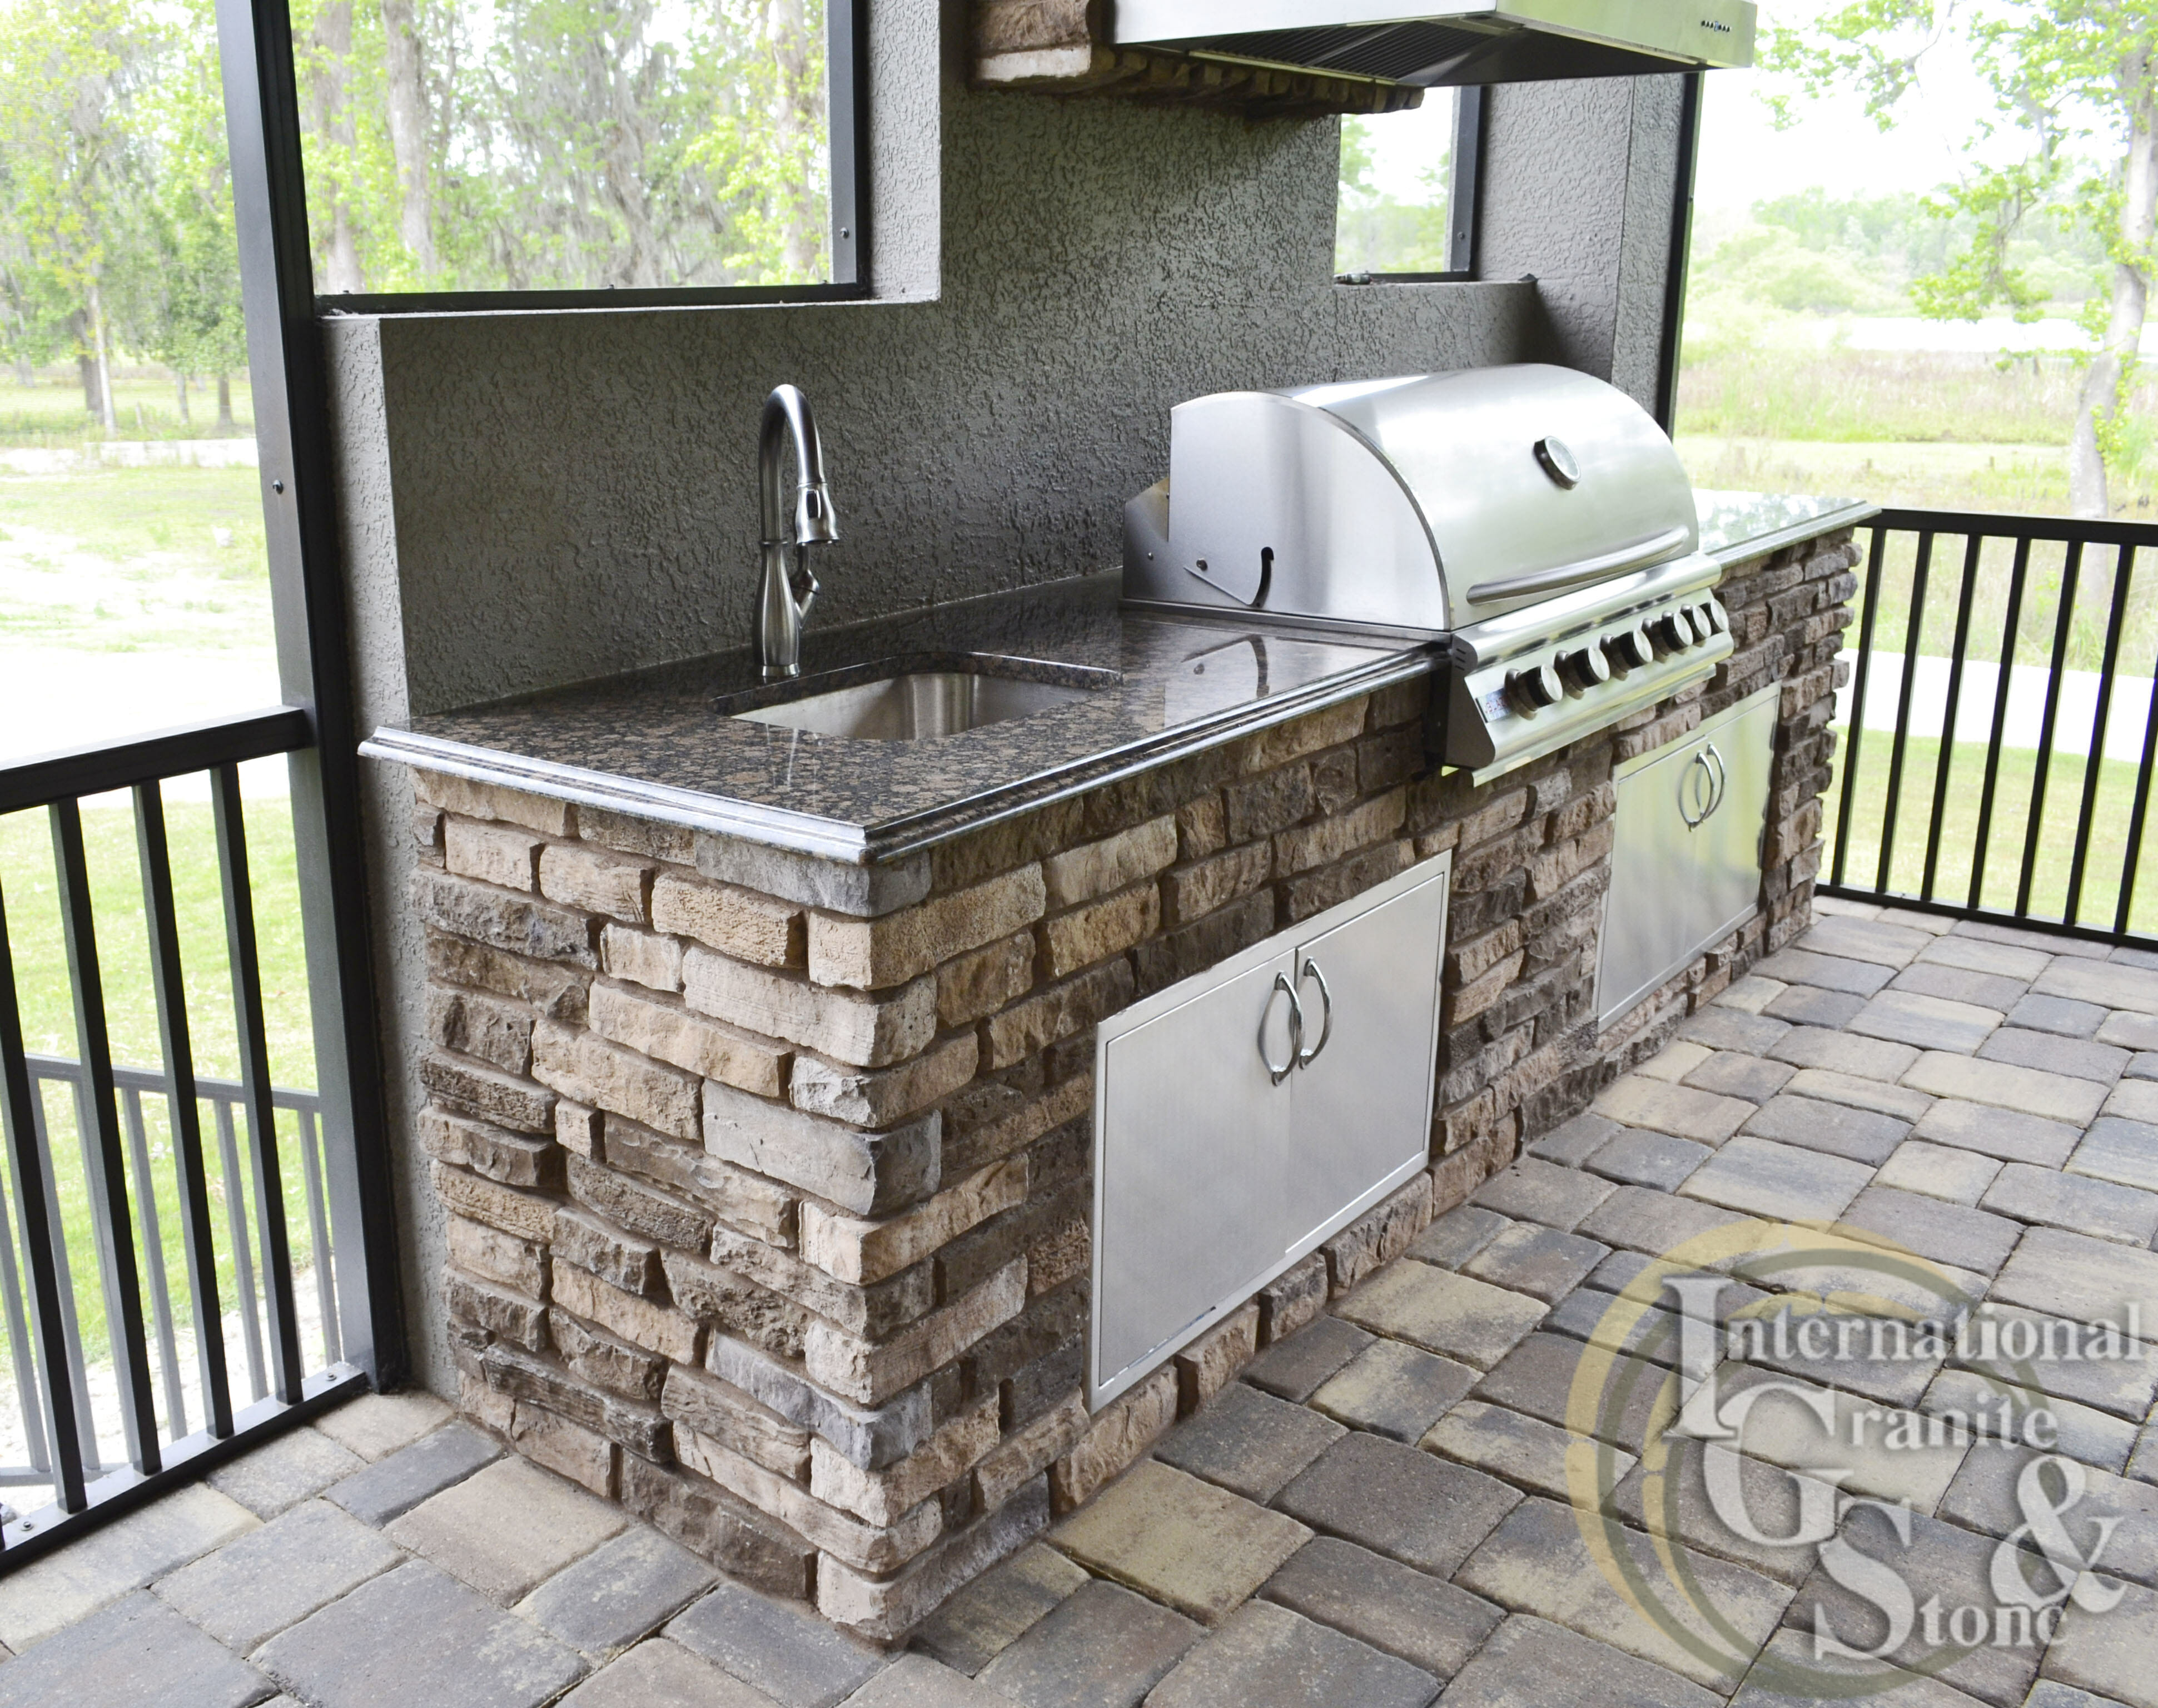 Pictures of International Granite and Stone Outdoor Kitchen ...